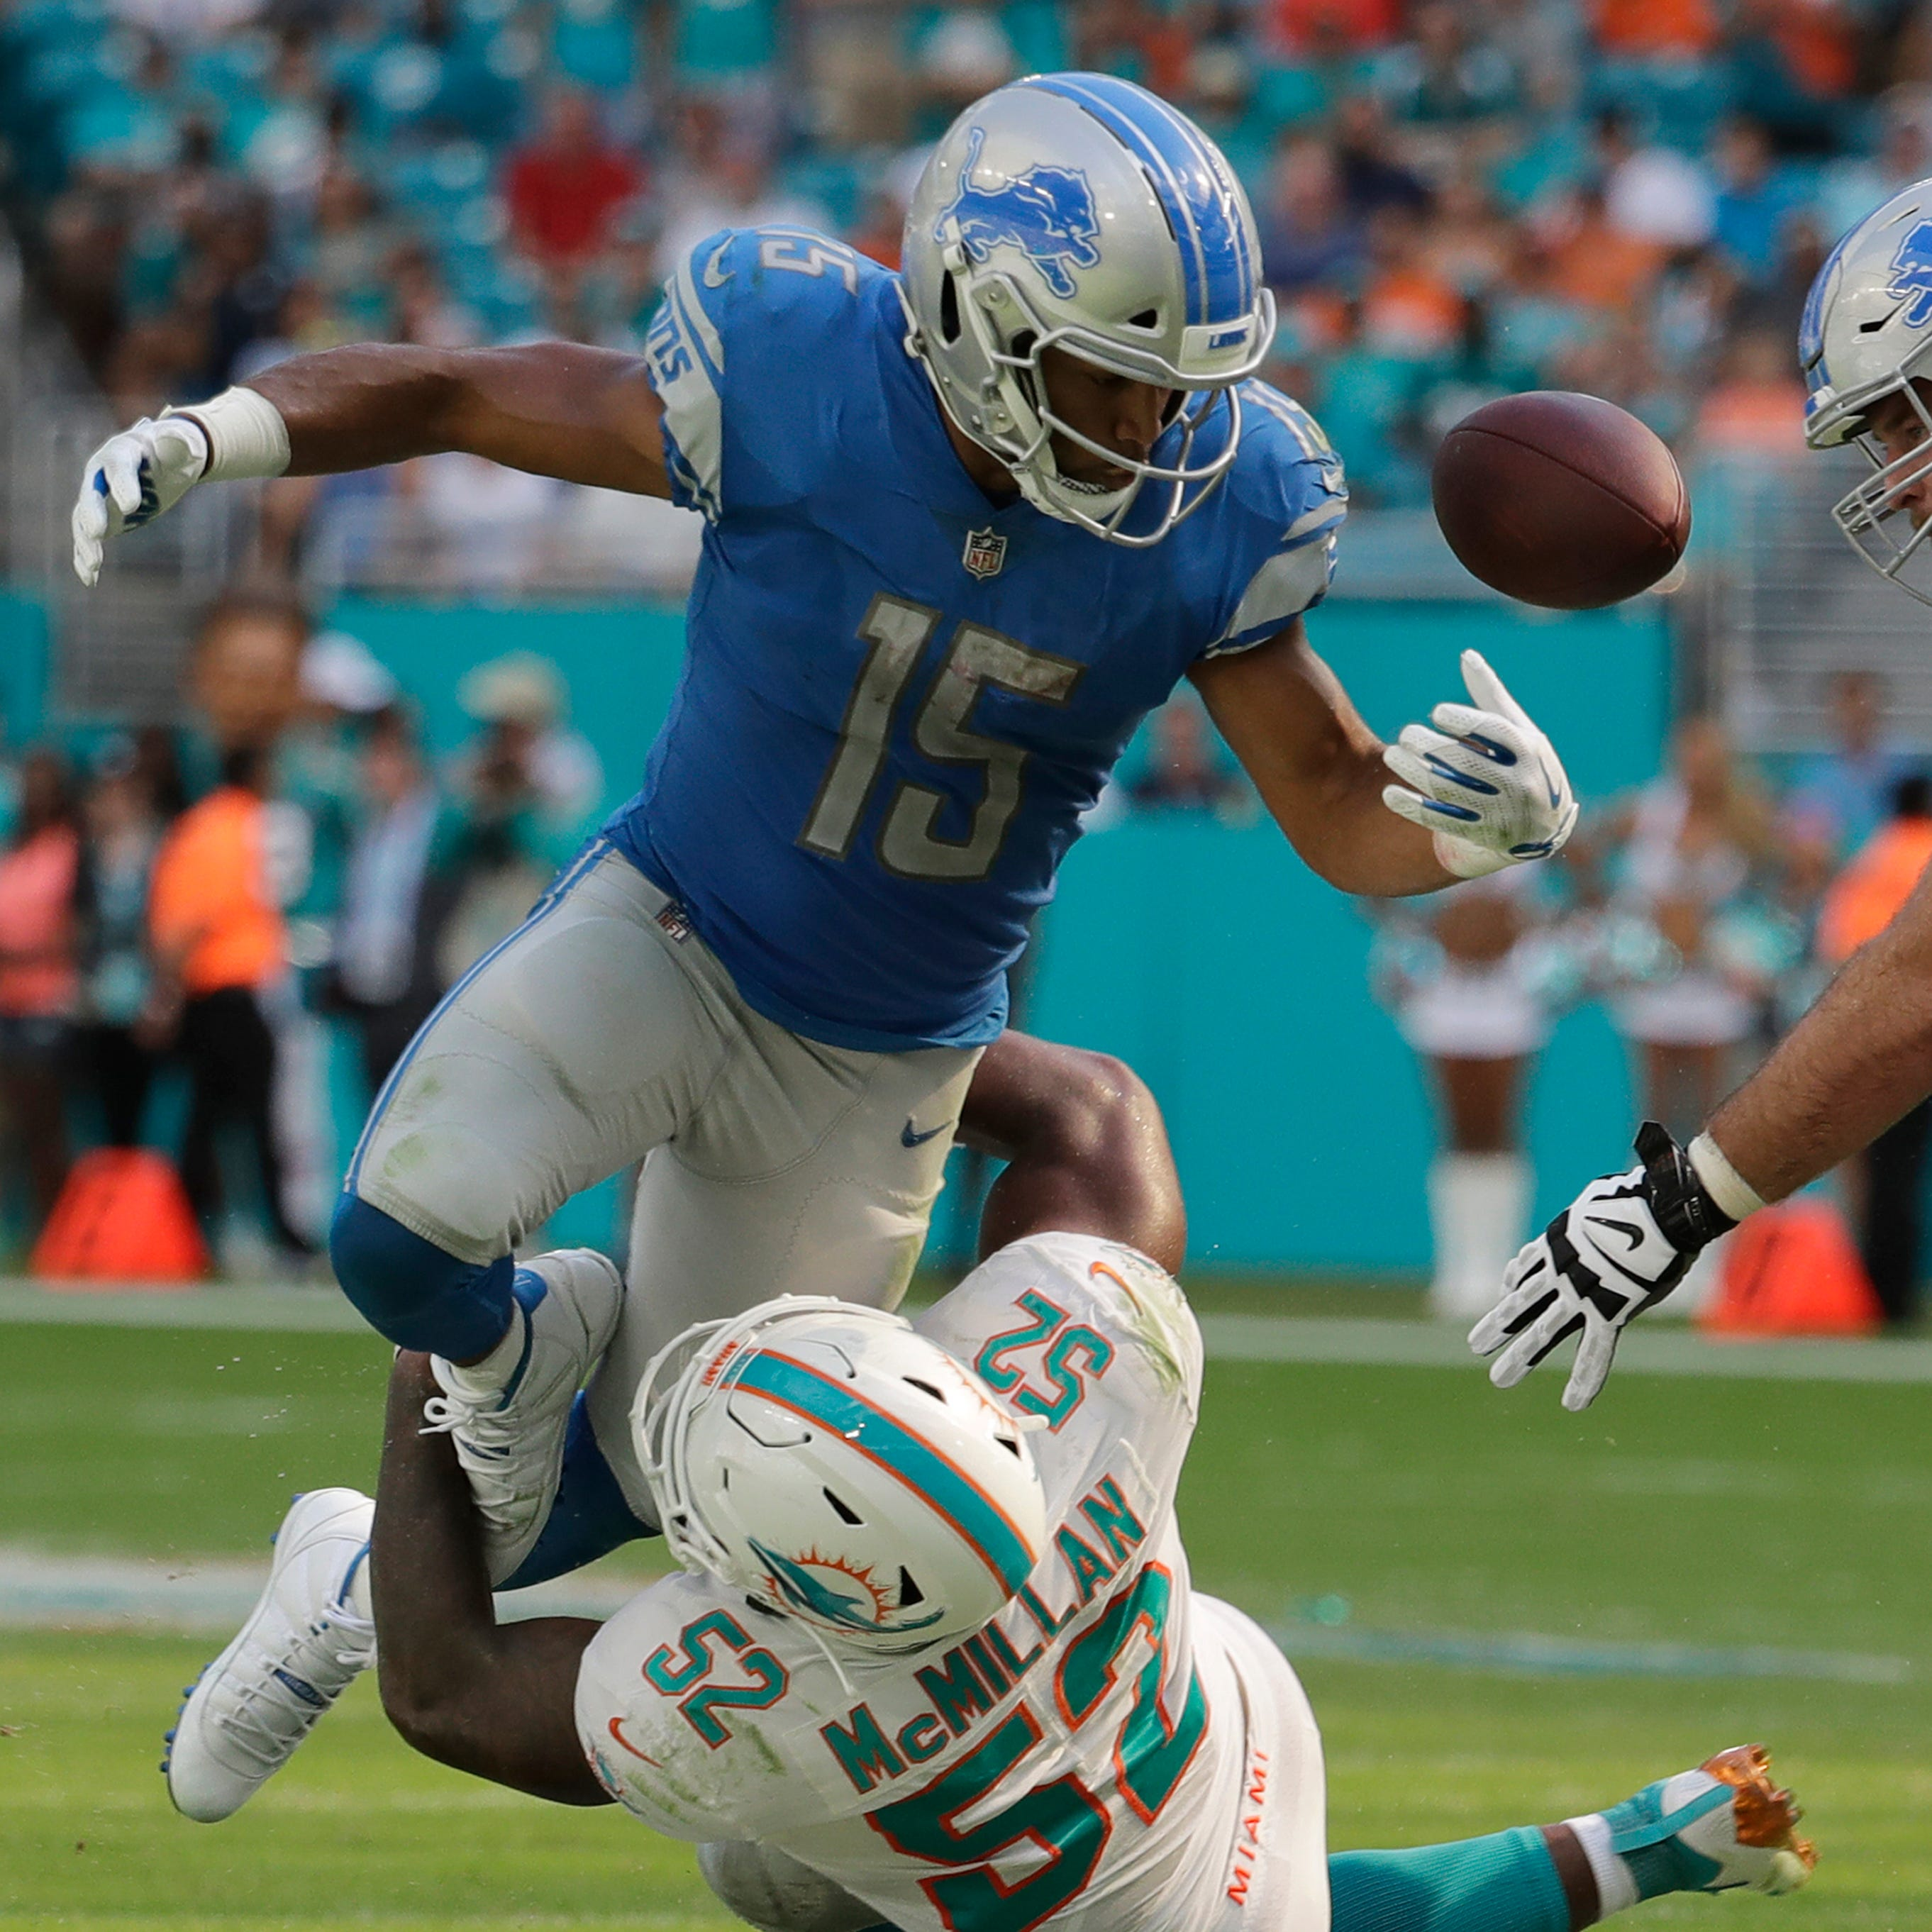 Detroit Lions' Golden Tate on trade block? 16 possible players on move